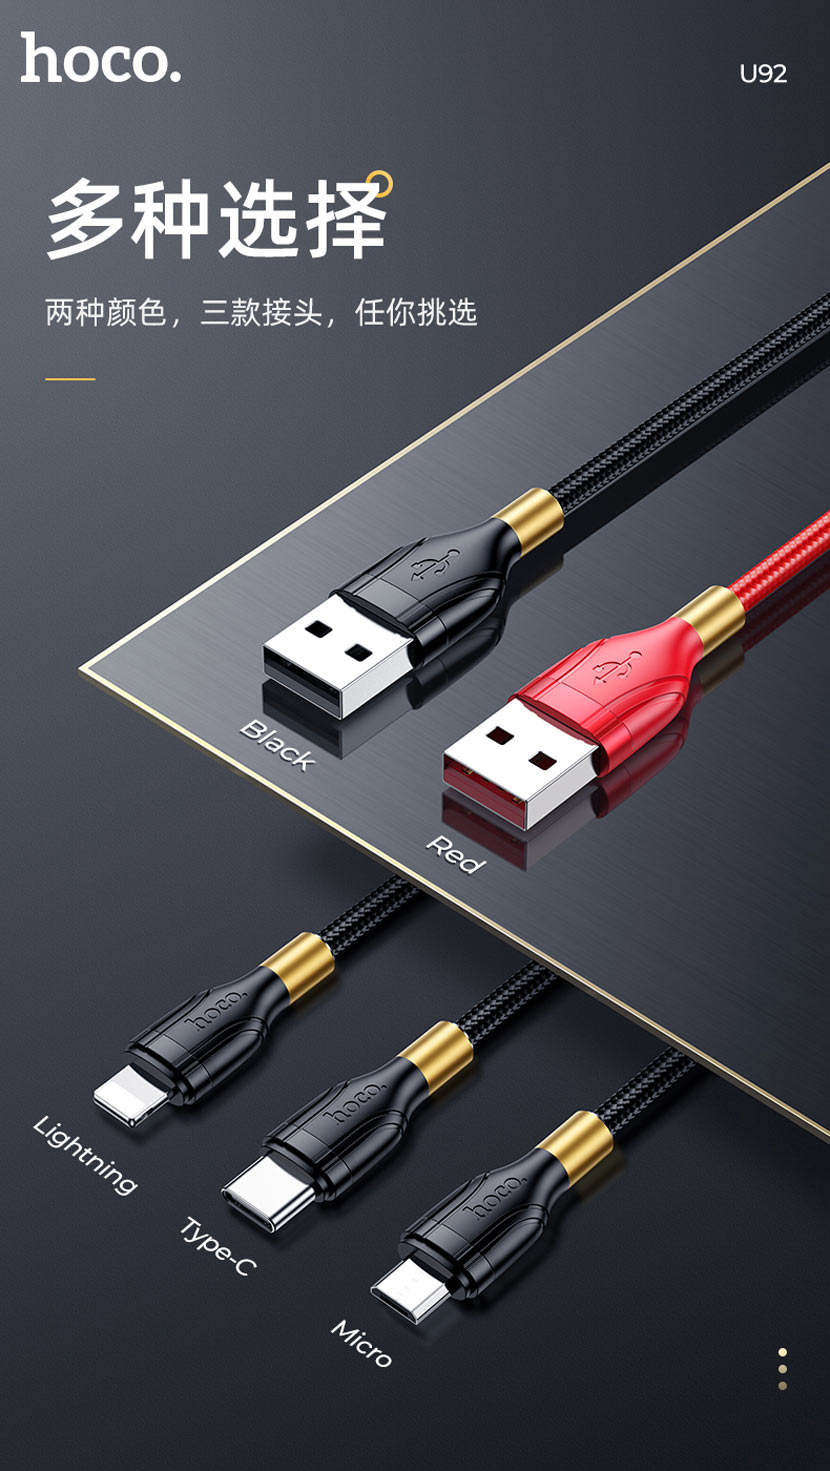 hoco news u92 gold collar charging data cable colors cn